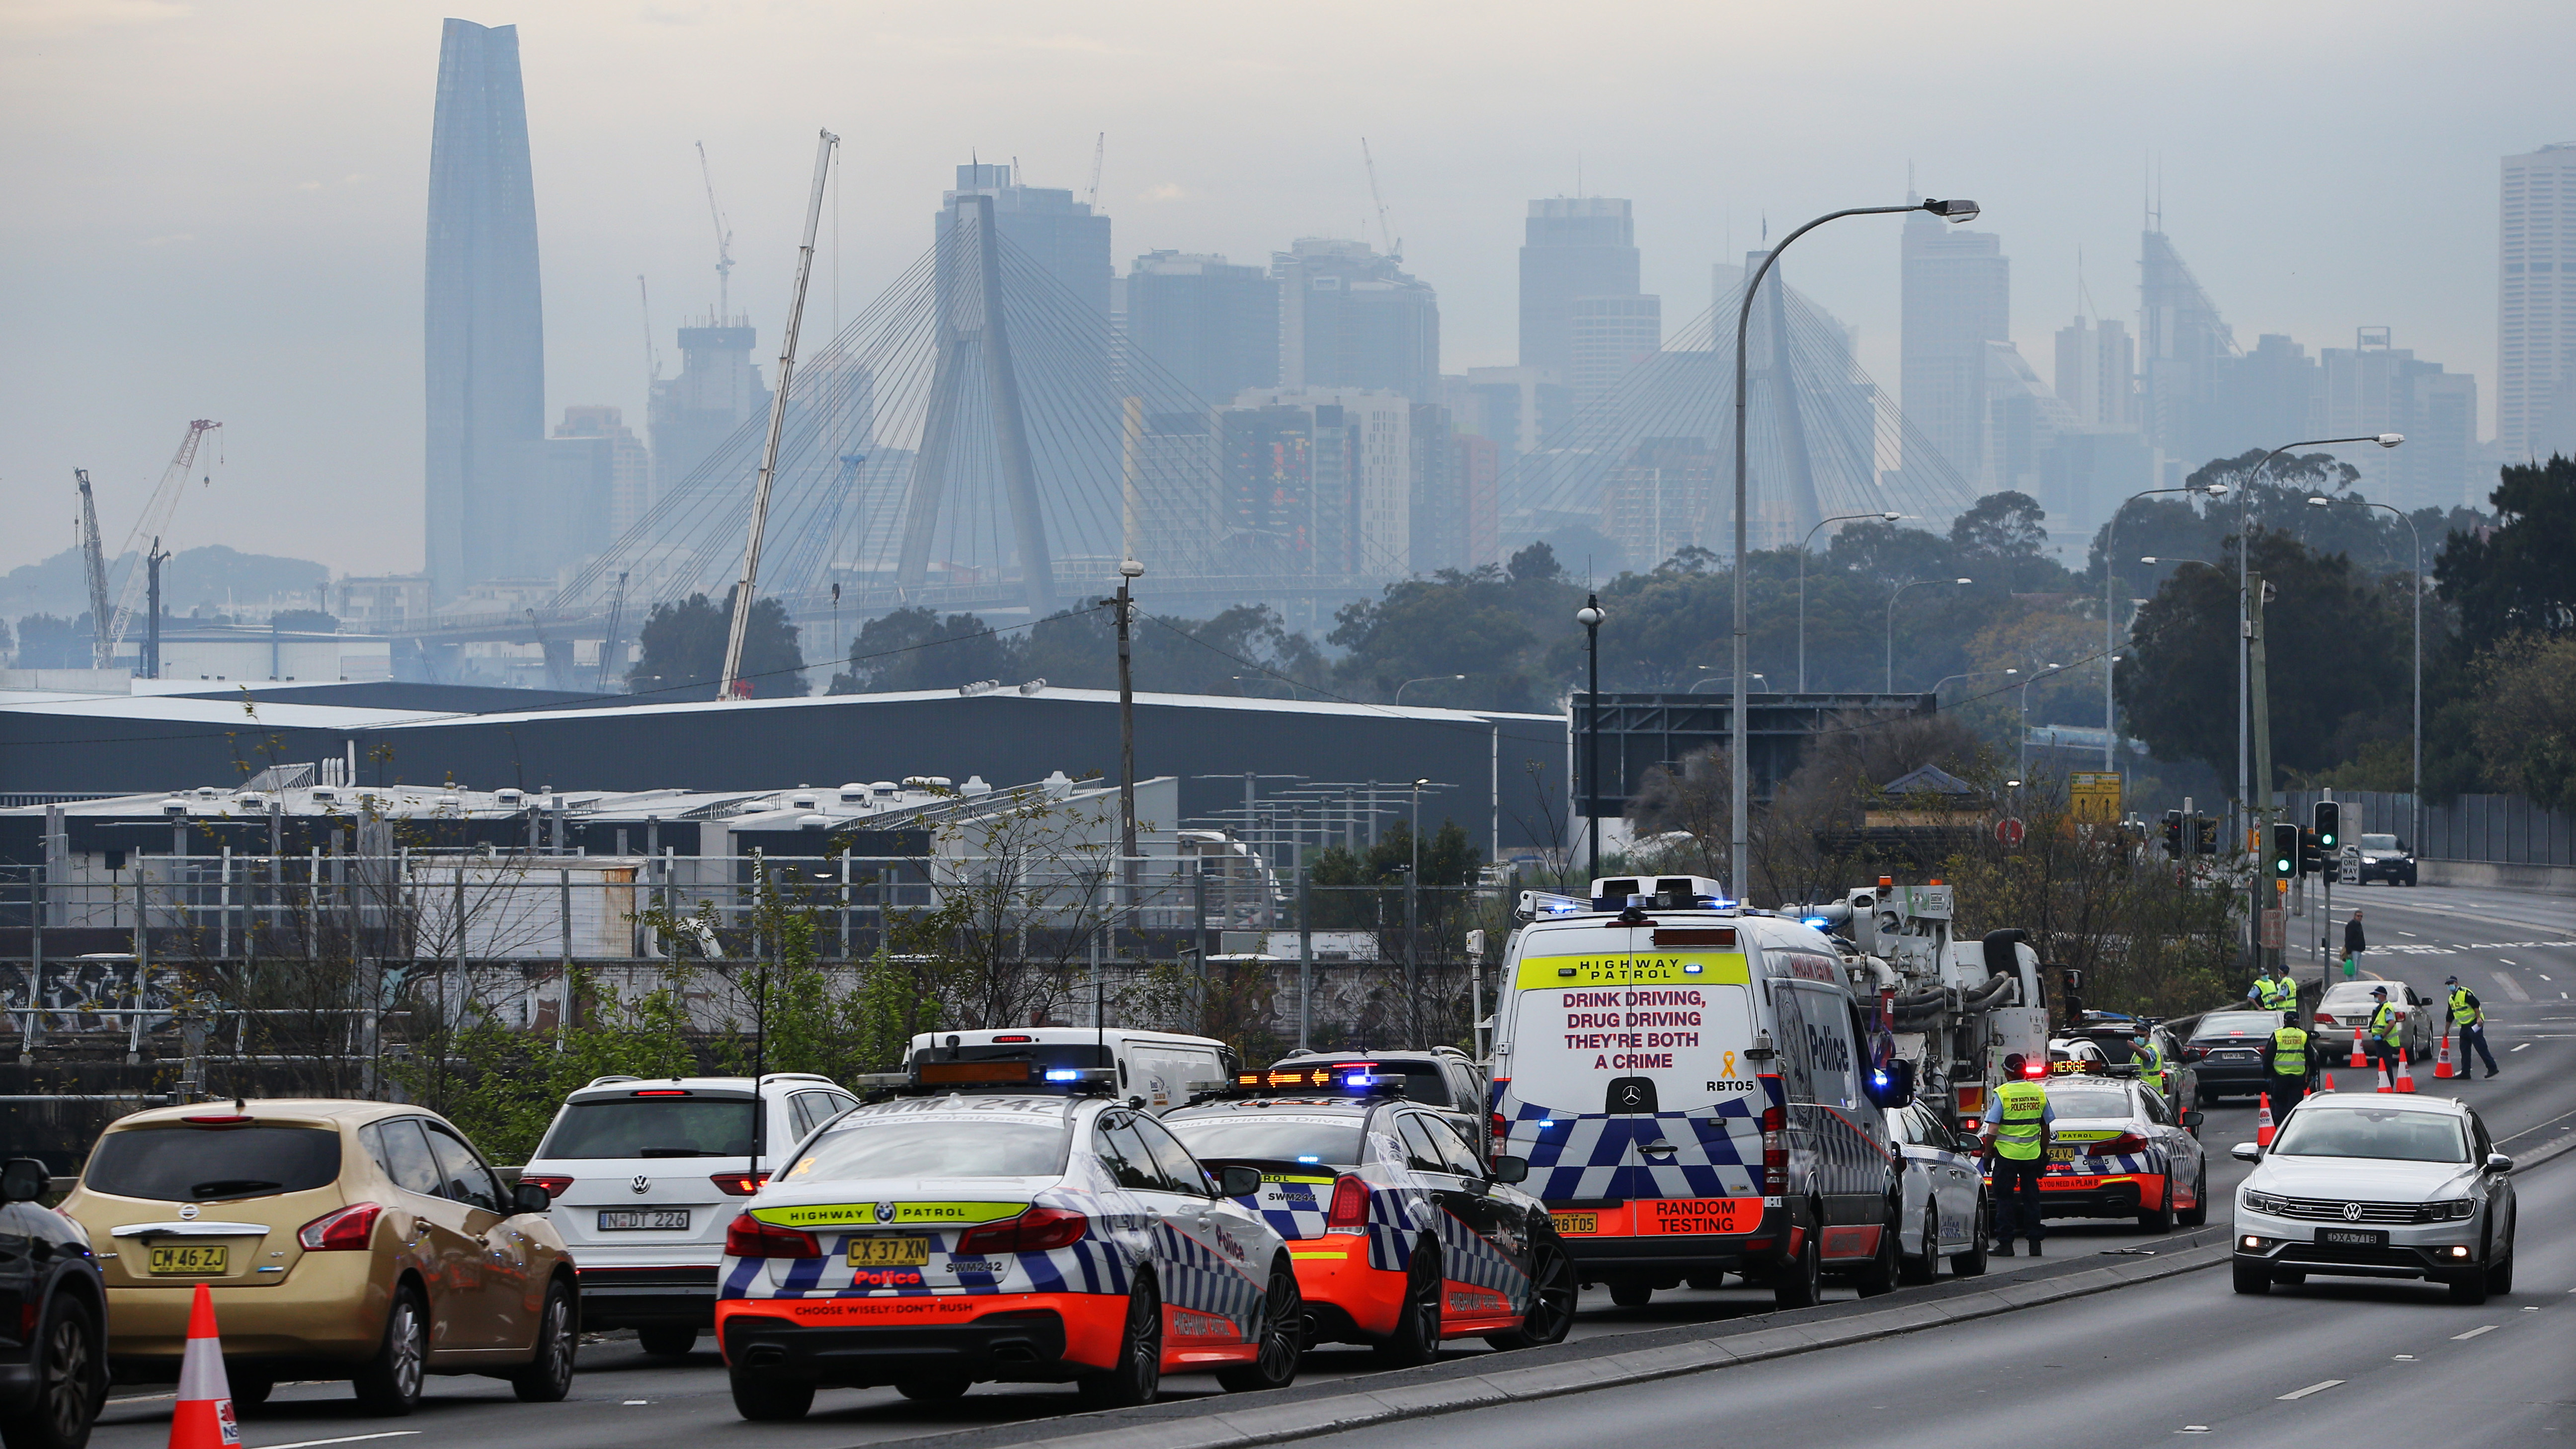 NSW Police perform roadside checks along the City West Link at Lilyfield, Sydney.